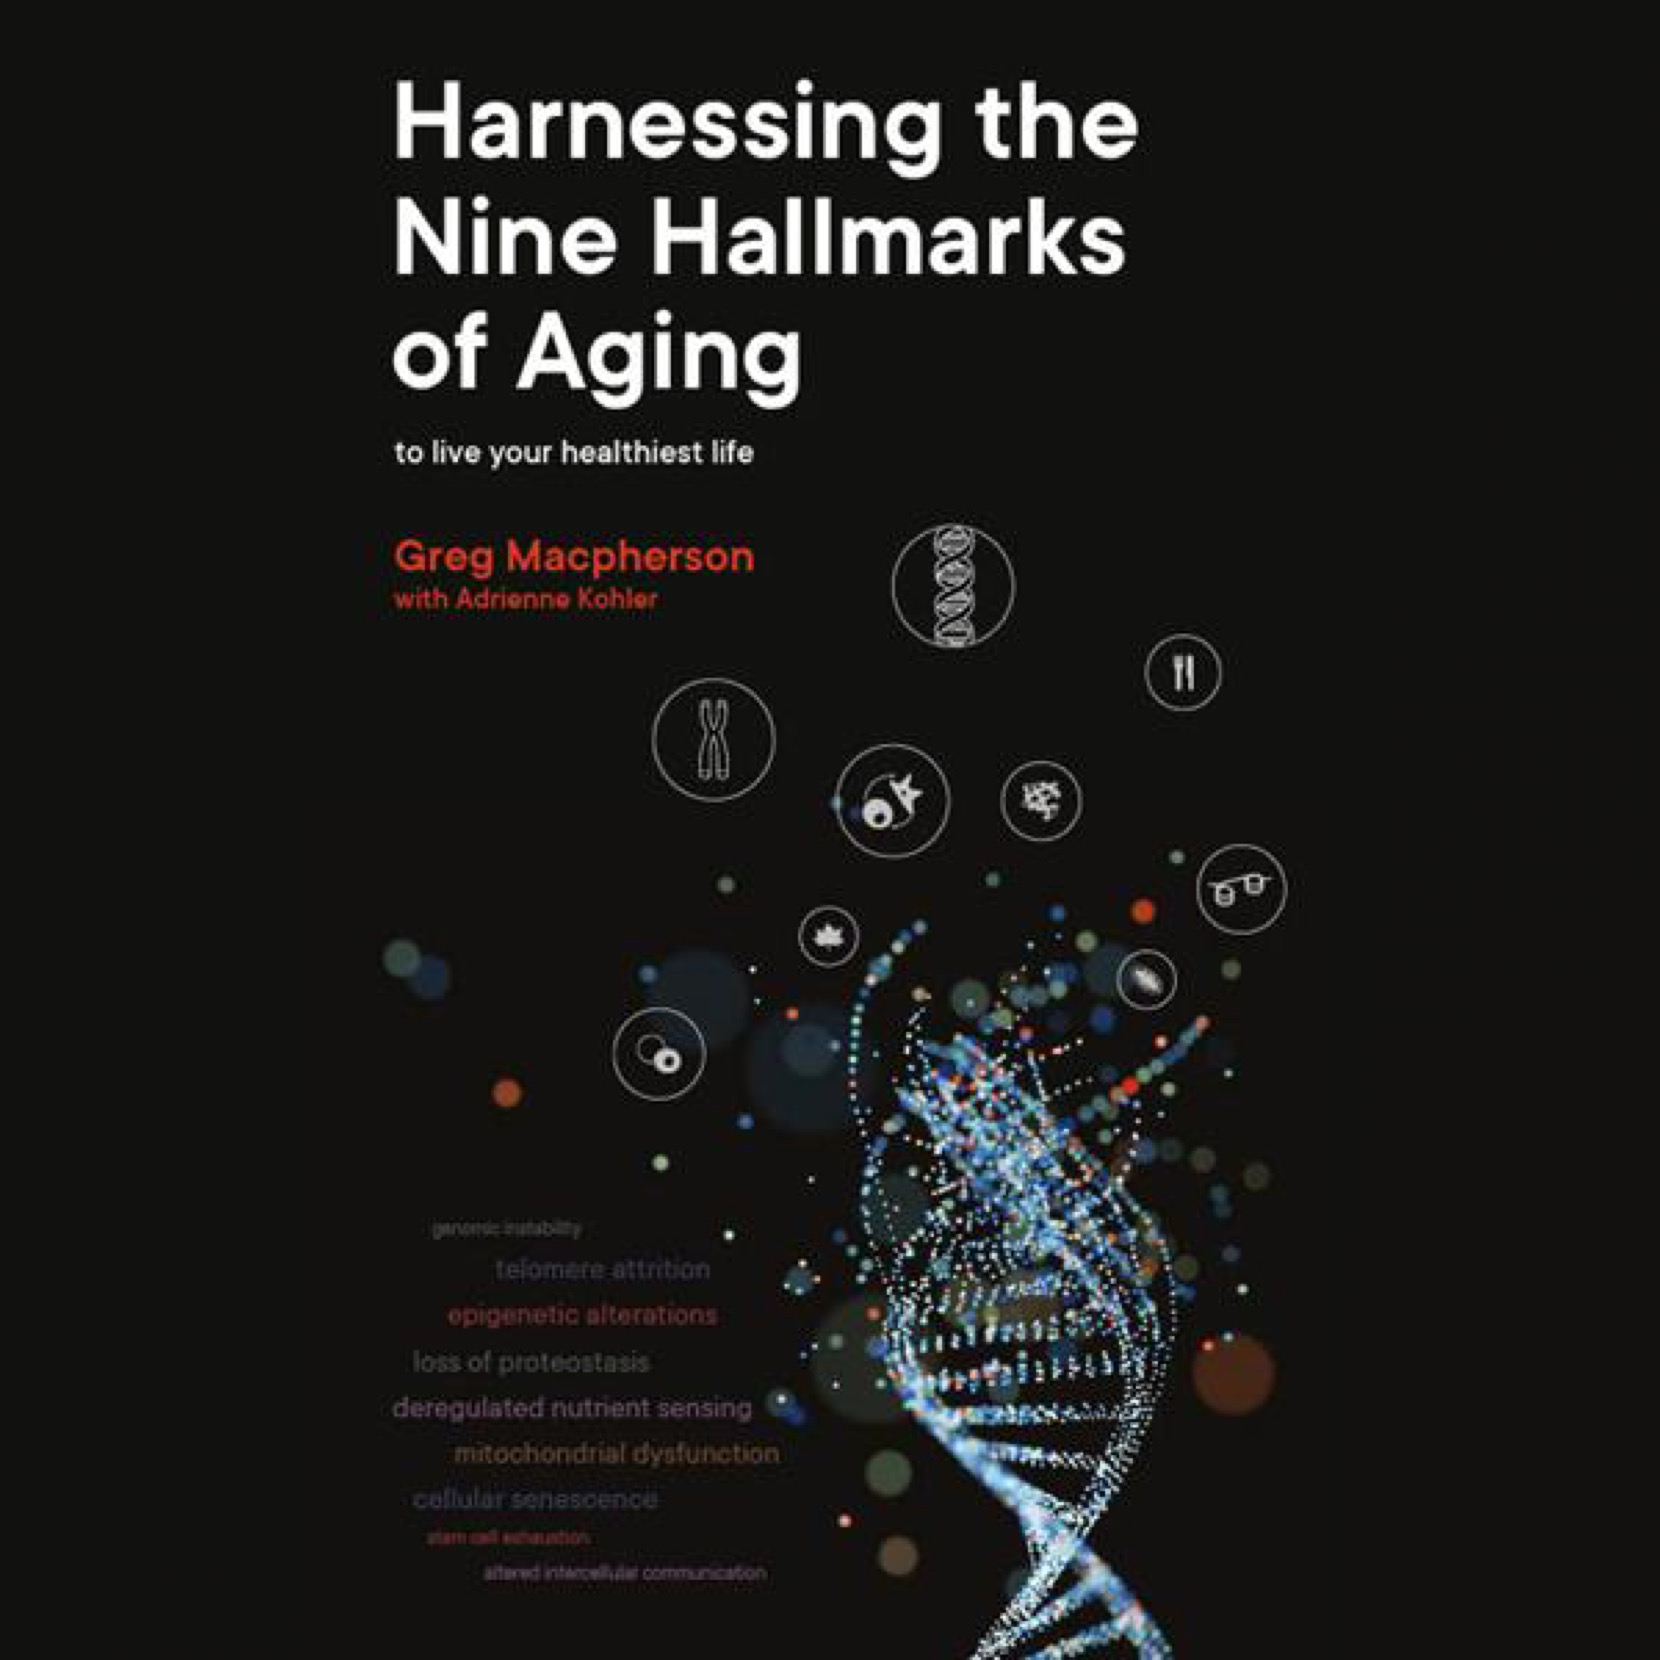 Harnessing the Nine Hallmarks of Aging: to live your healthiest life by Greg Macpherson for use by 360 Magazine